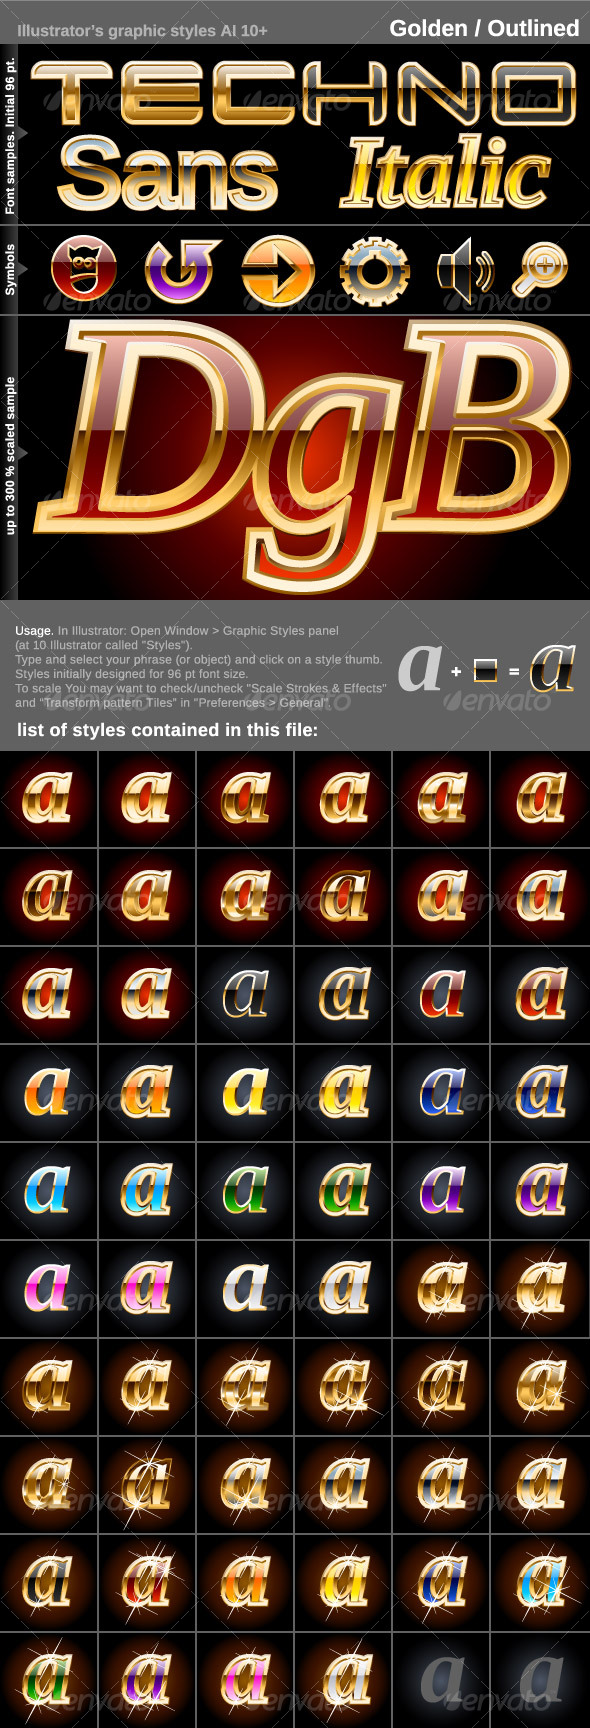 GraphicRiver 60 Illustrator Graphic Styles Golden Outlined 98701